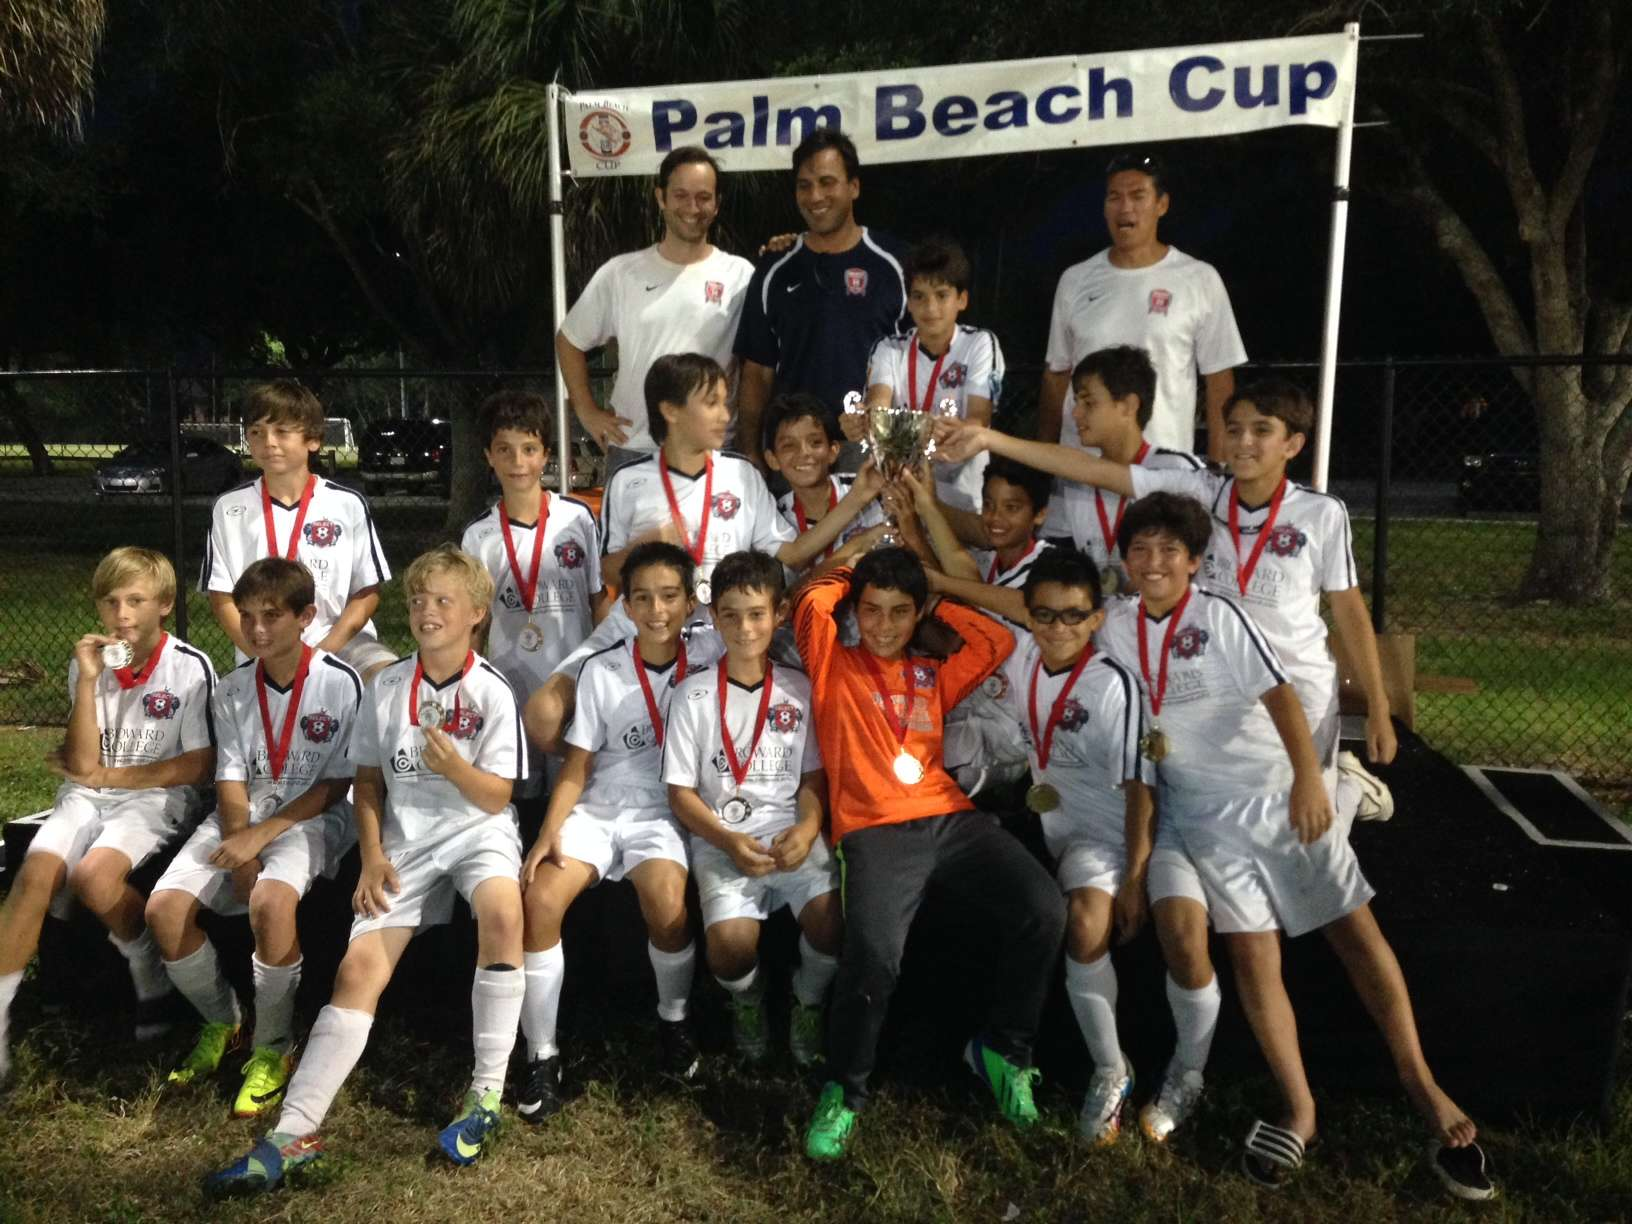 U12 Boys Palm Beach Cup